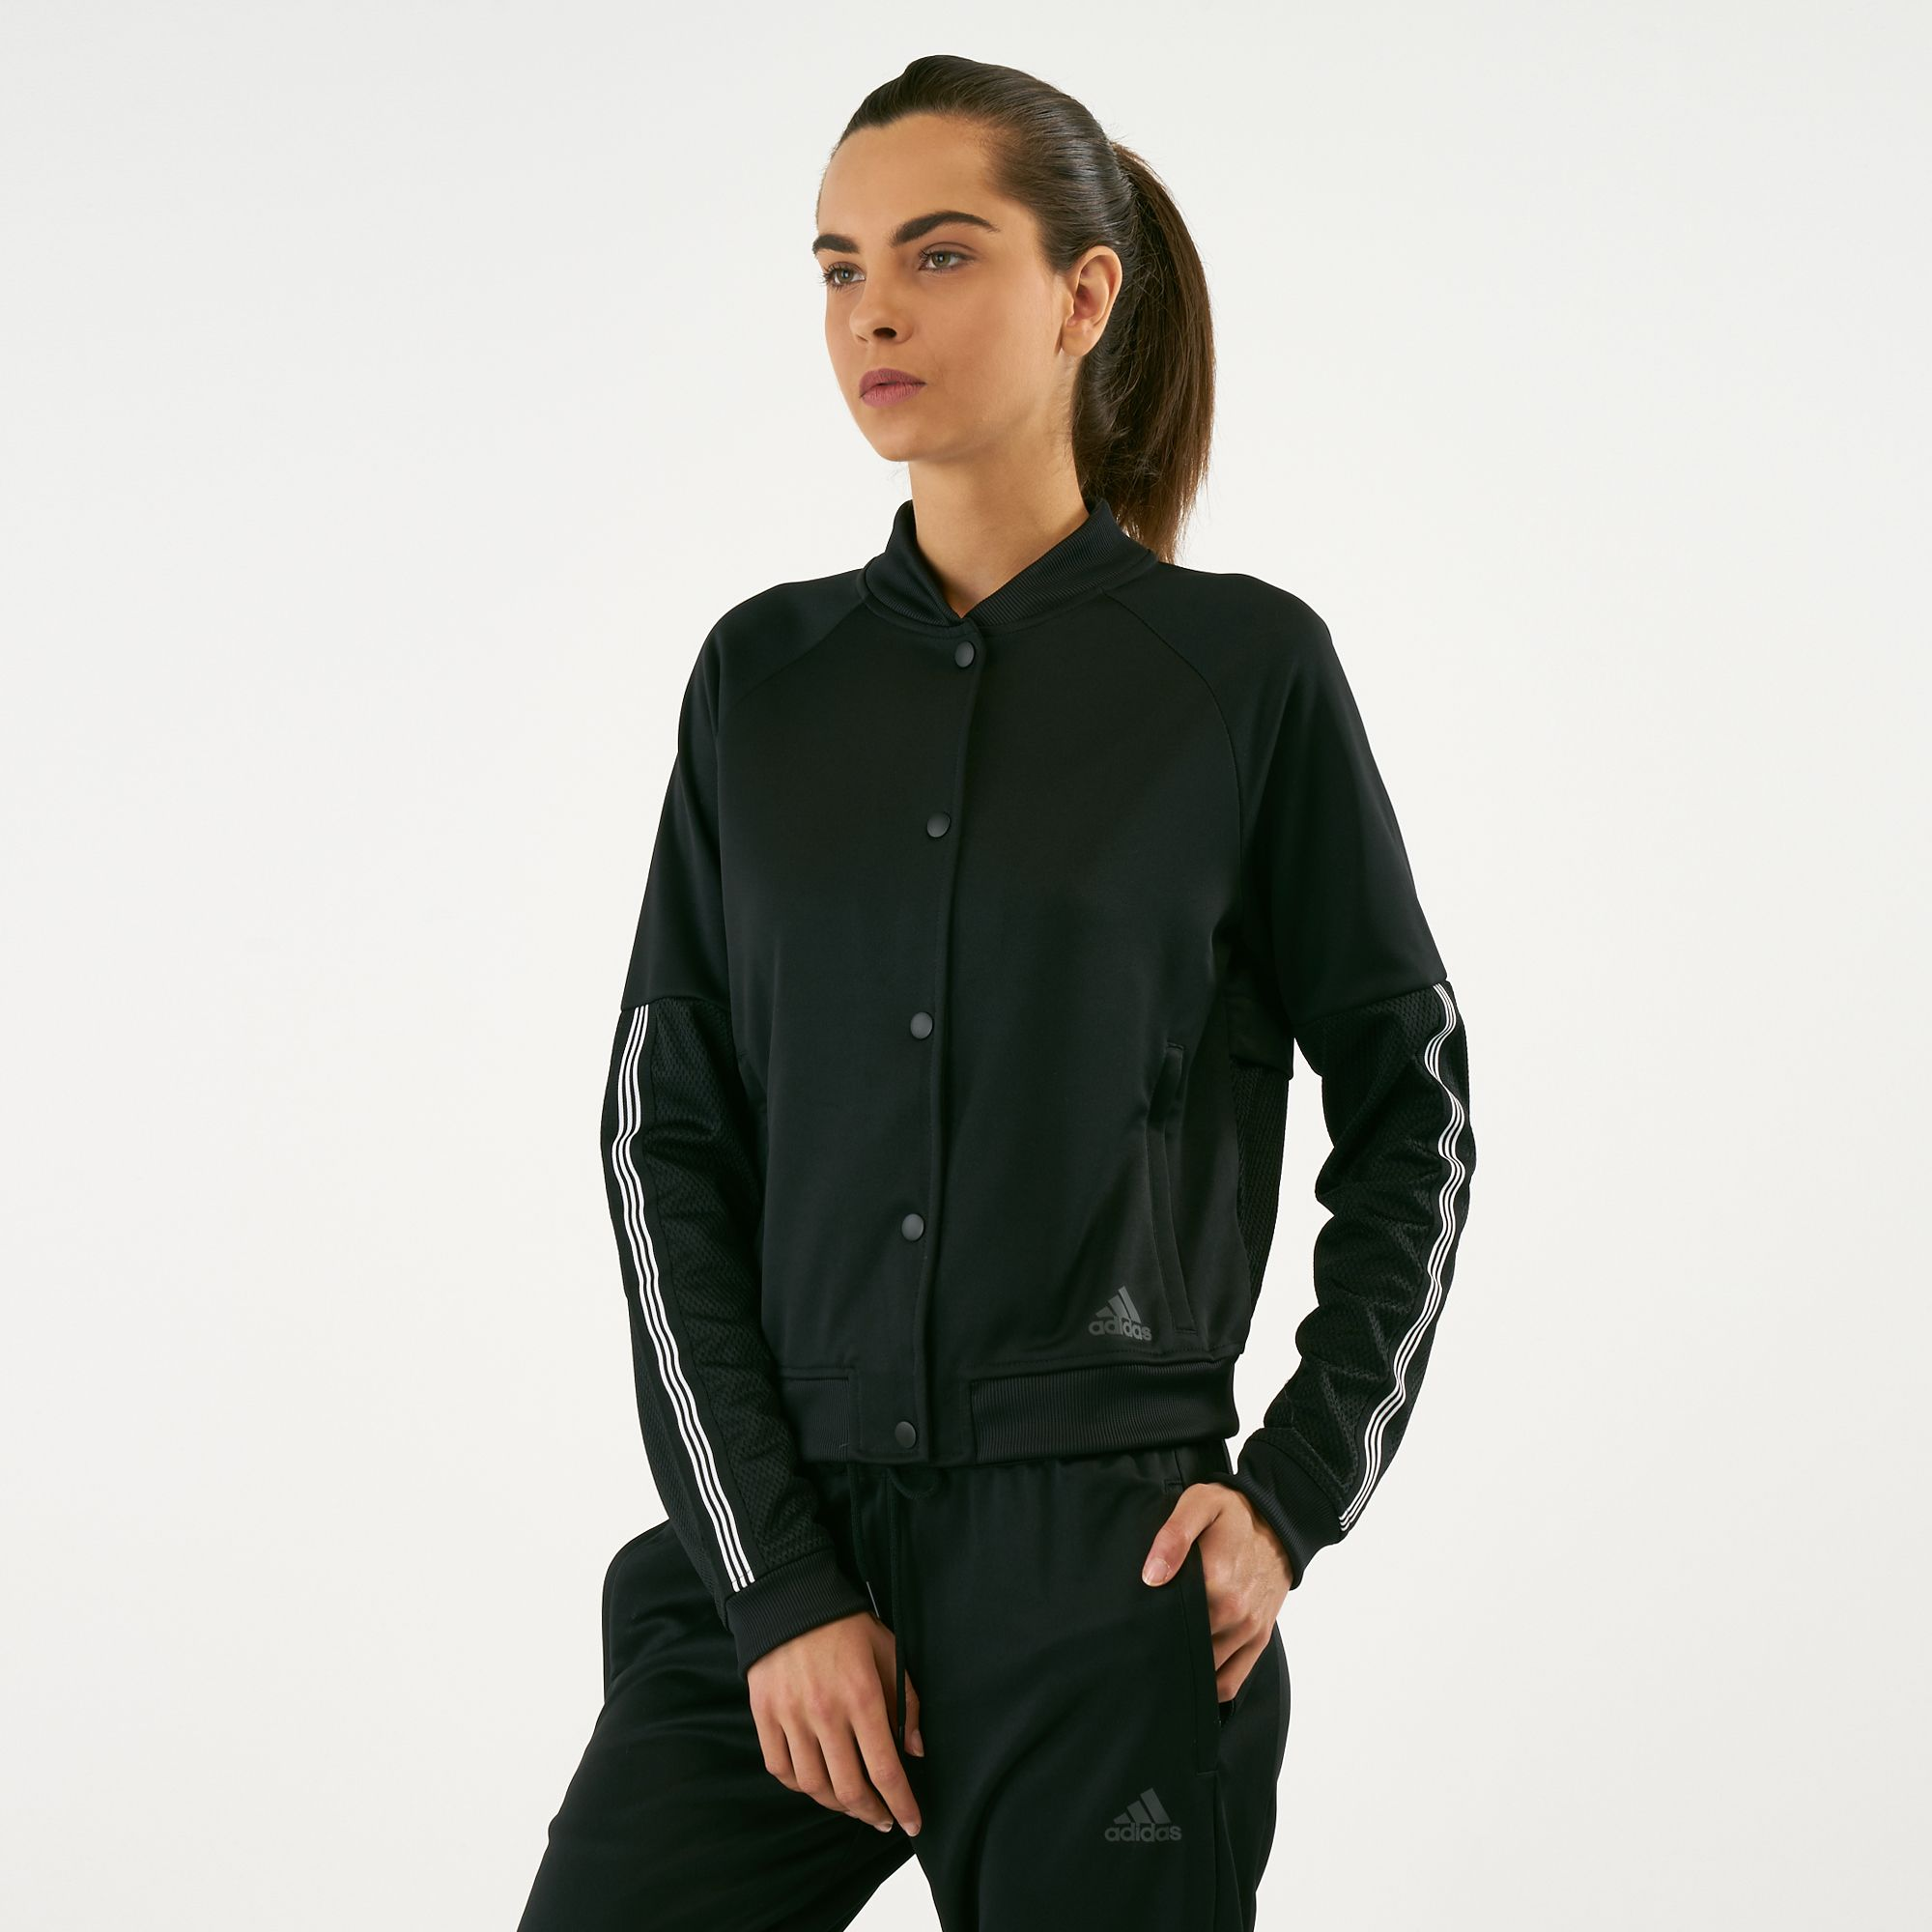 ab822fa1cd359 adidas Women's Snap Jacket | Track Jackets | Jackets | Clothing | Women's  Sale | Sale | SSS